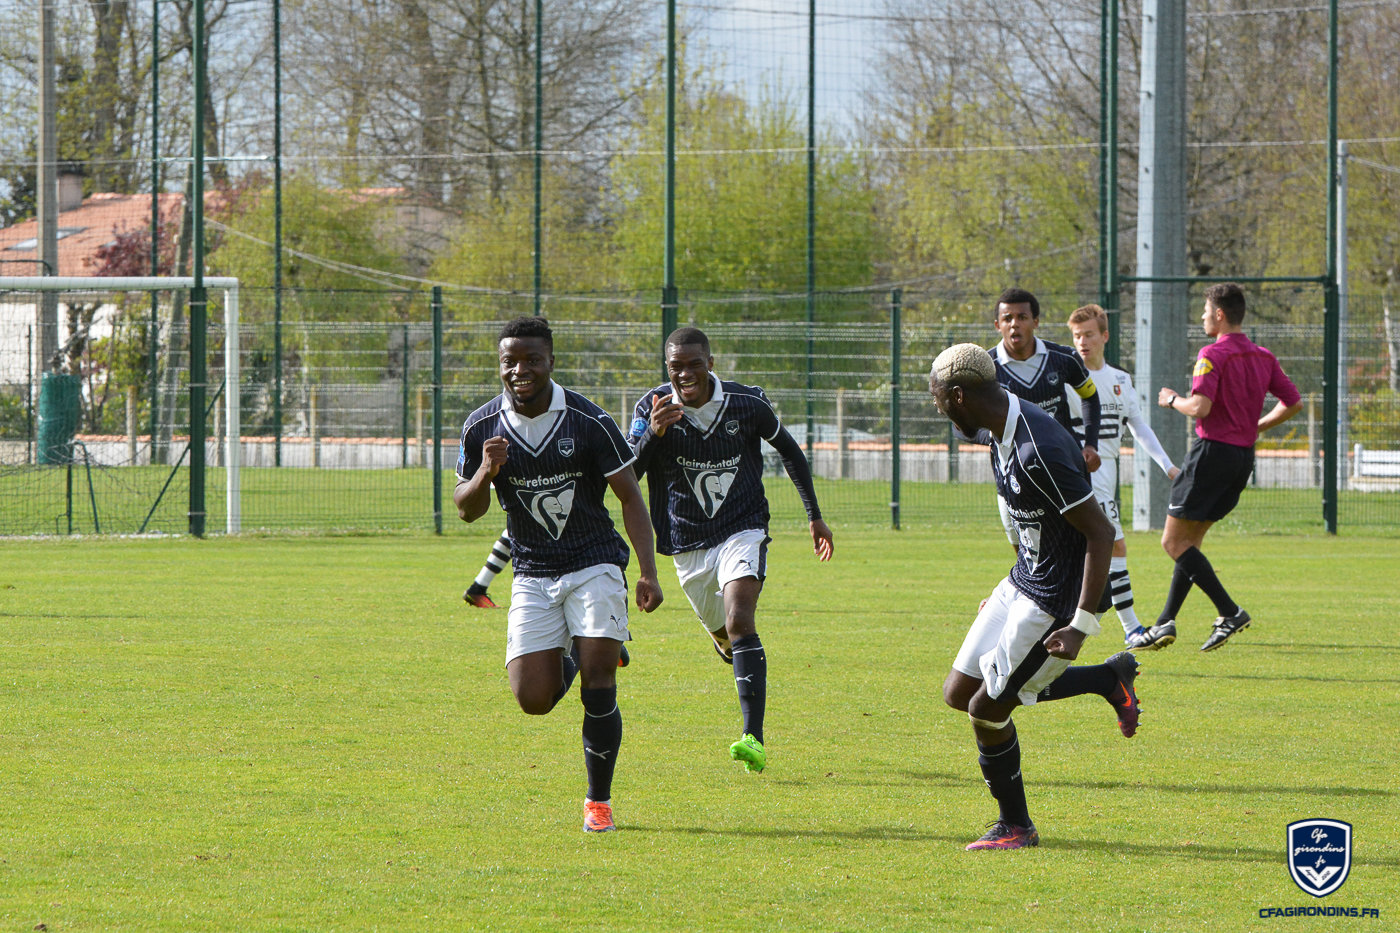 Cfa Girondins : Champions et direction les phases finales ! - Formation Girondins